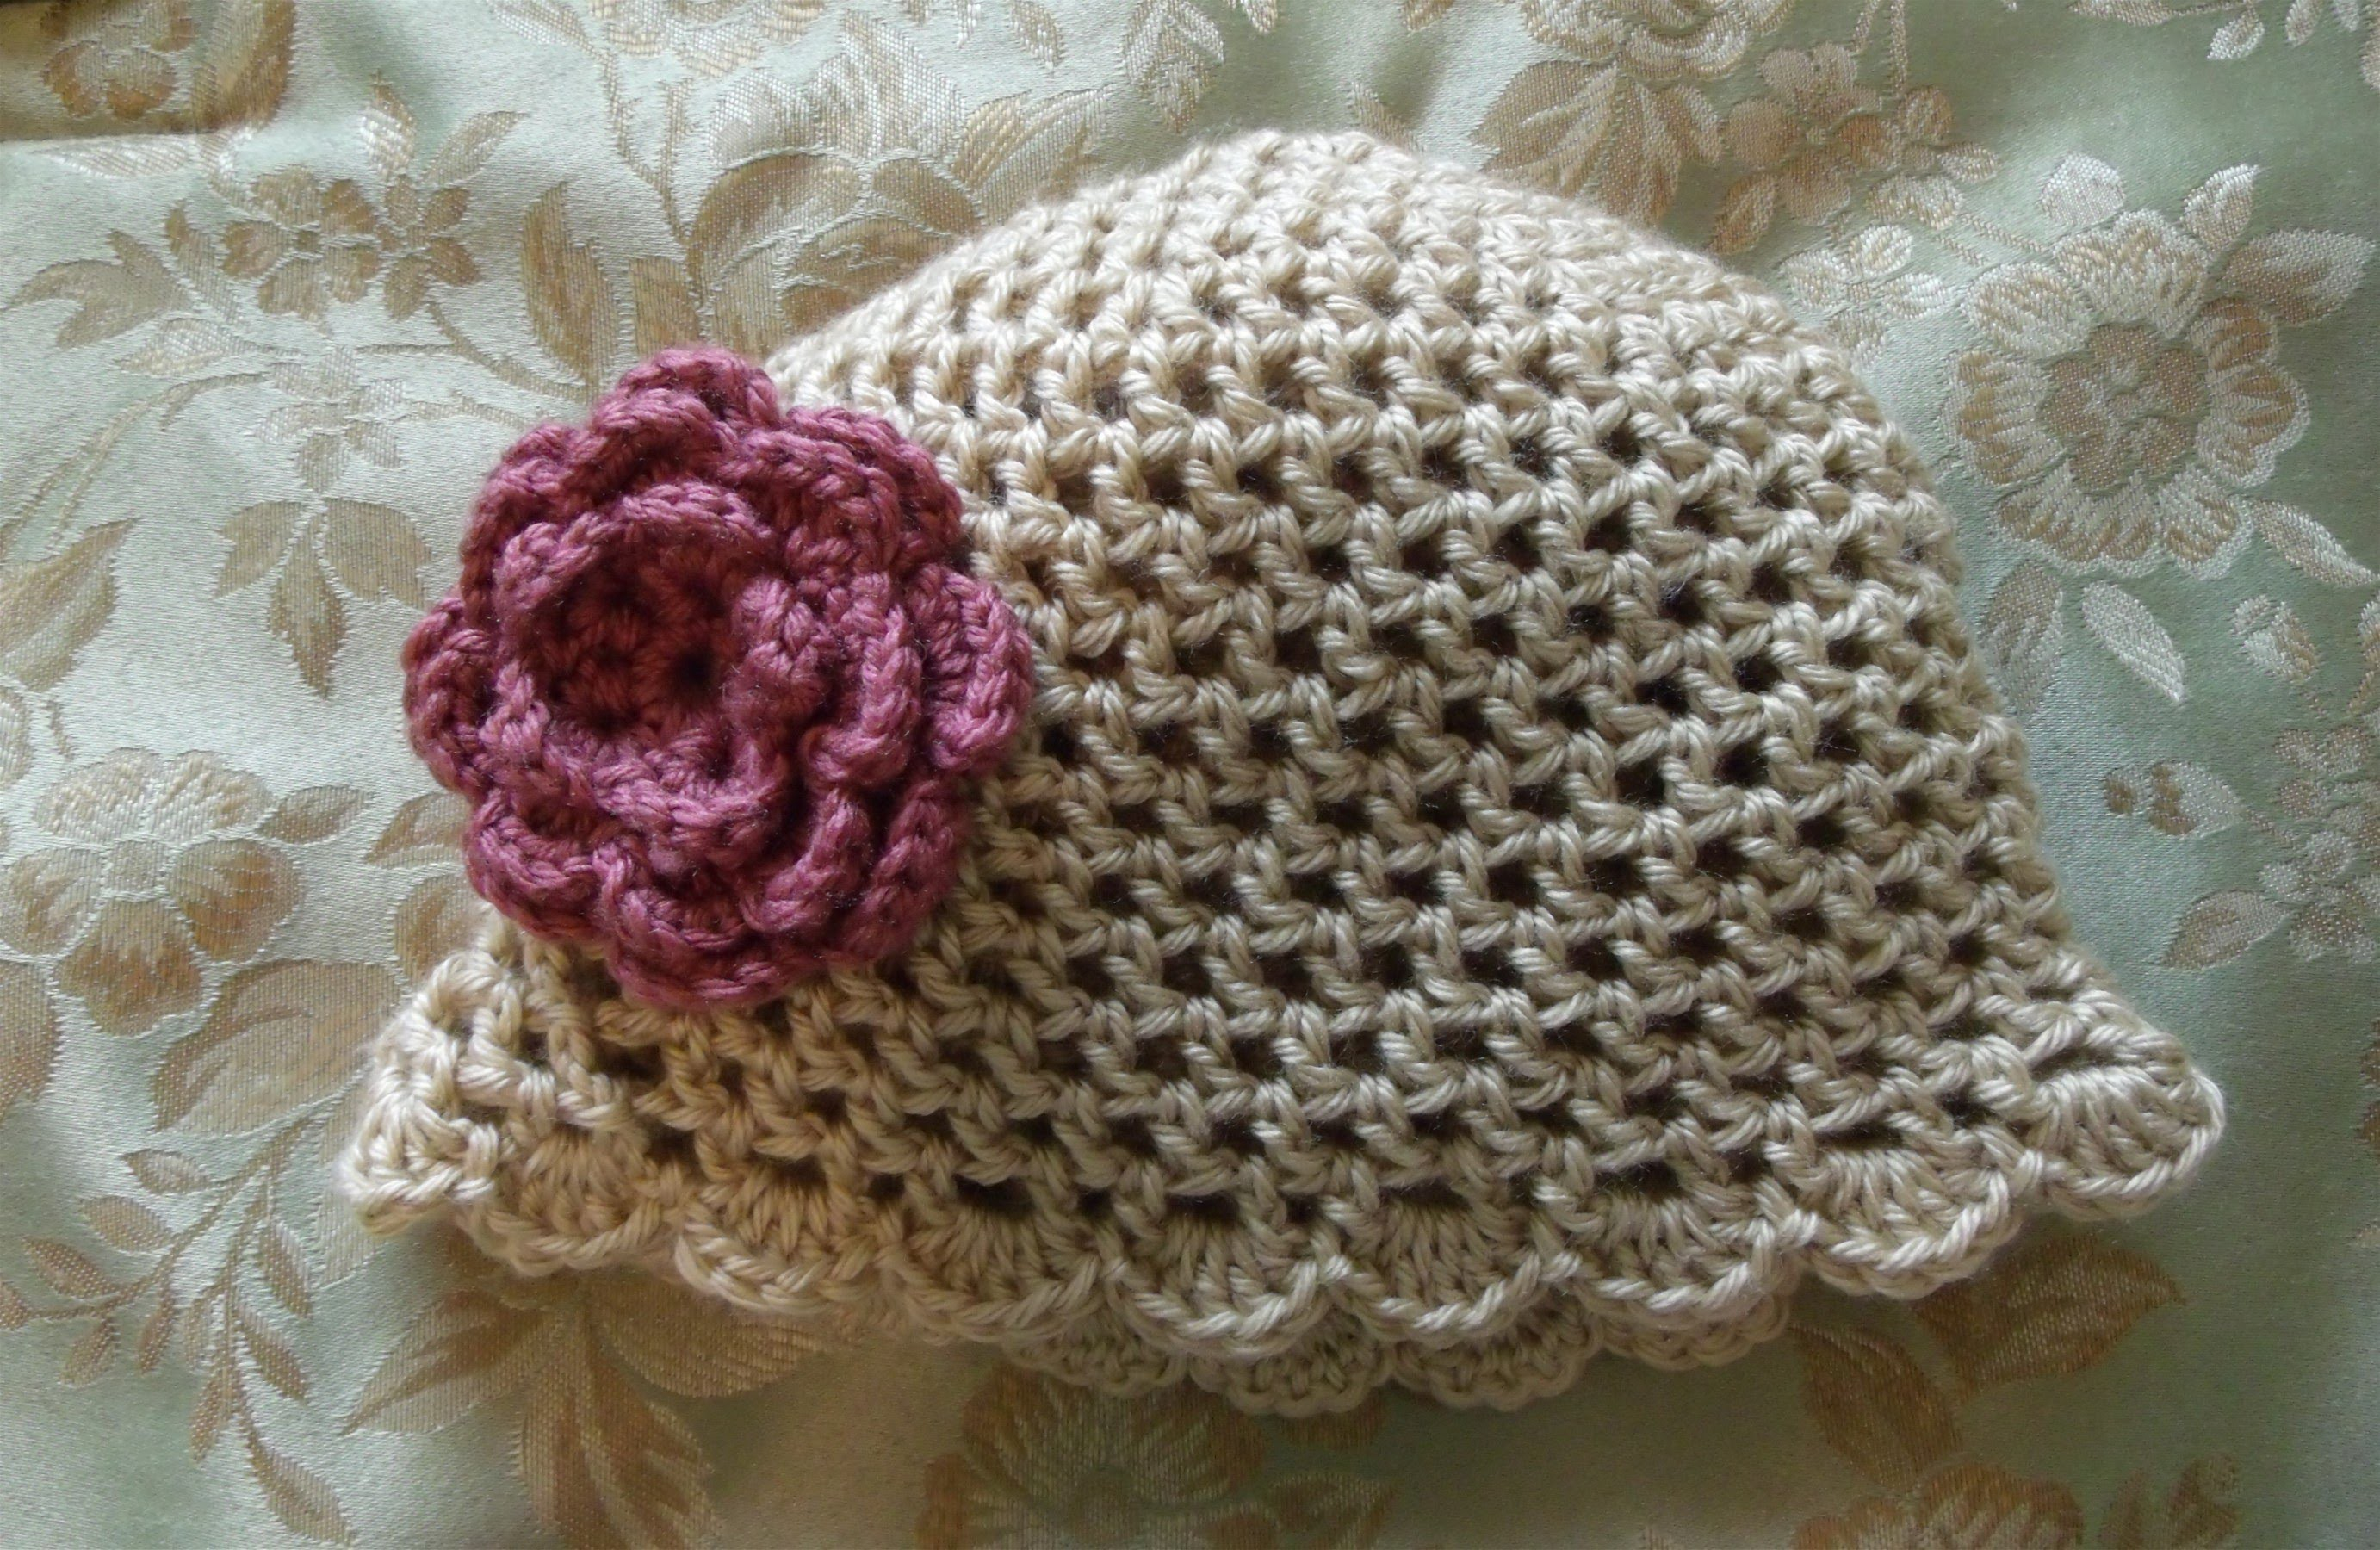 How to crochet a hat or beanie with a shell, scallop edge